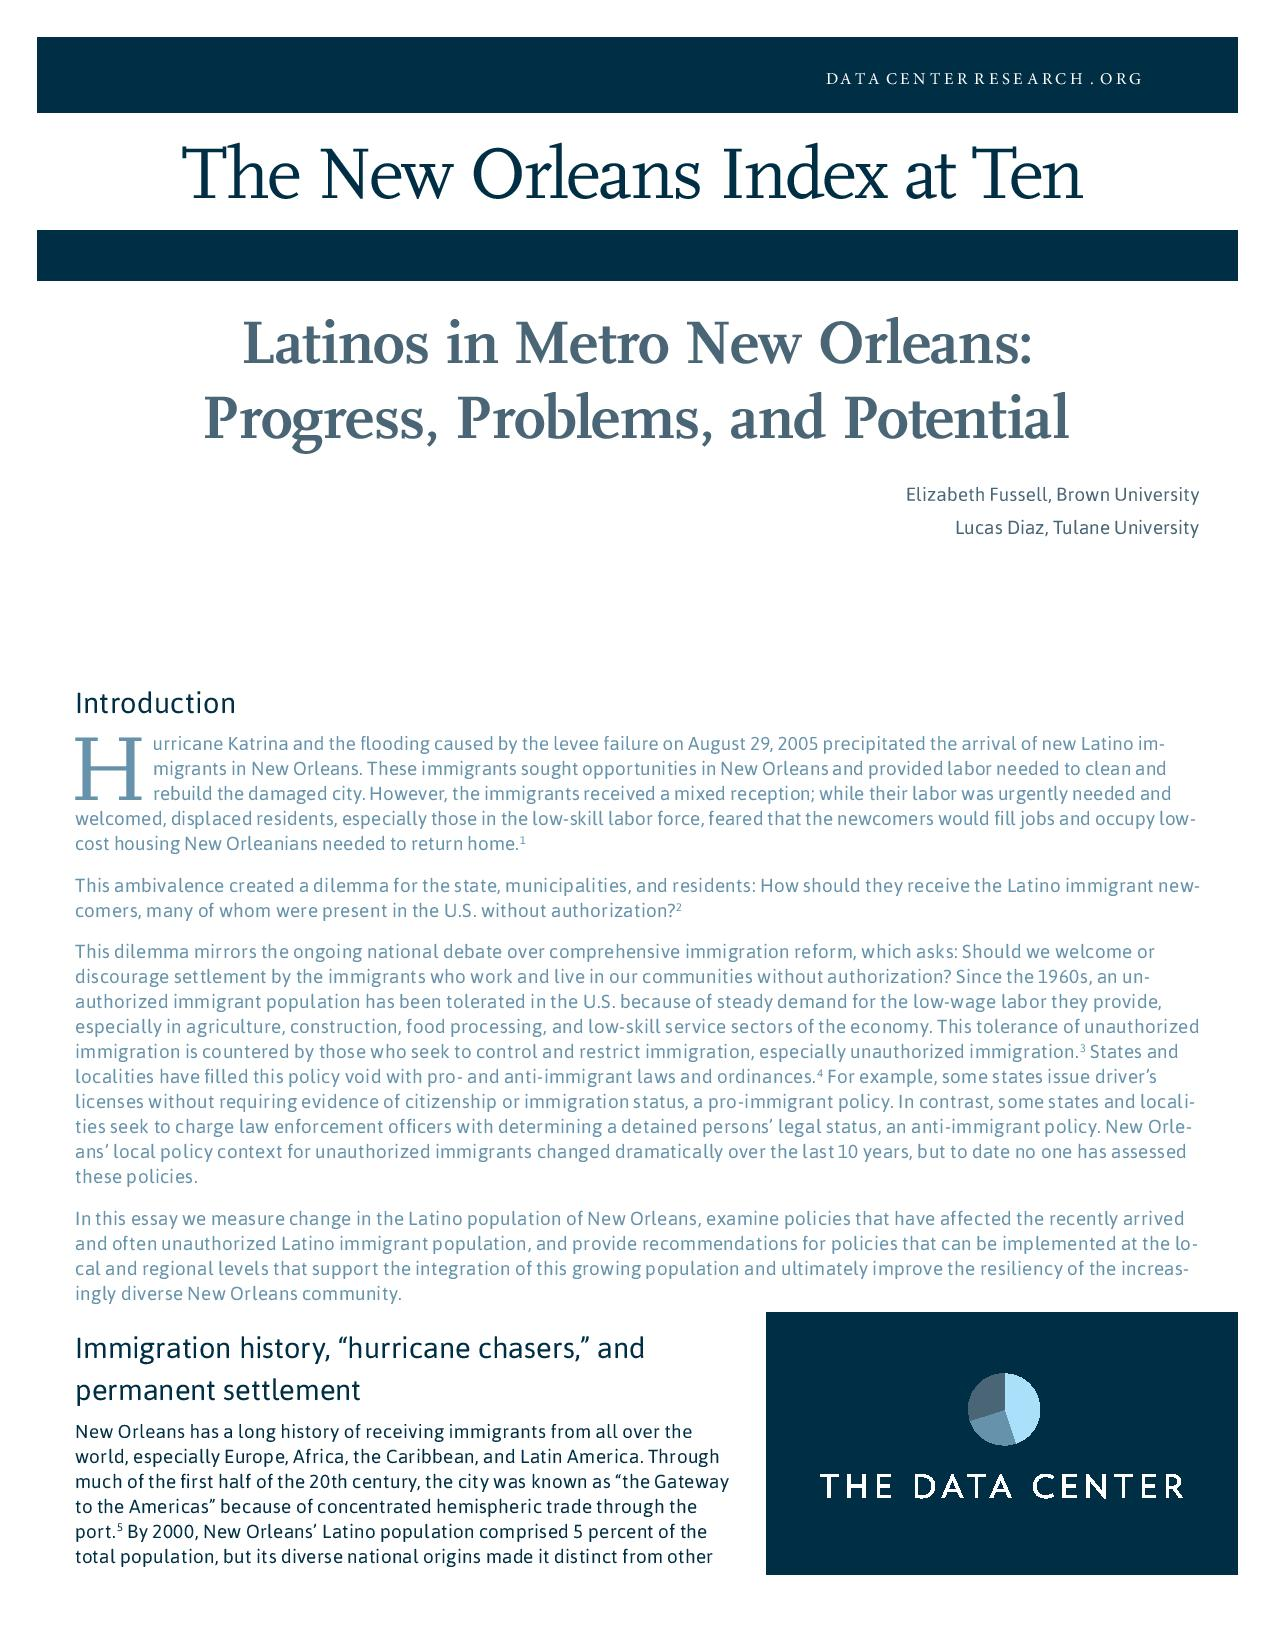 Latinos in Metro New Orleans: Progress, Problems, and Potential